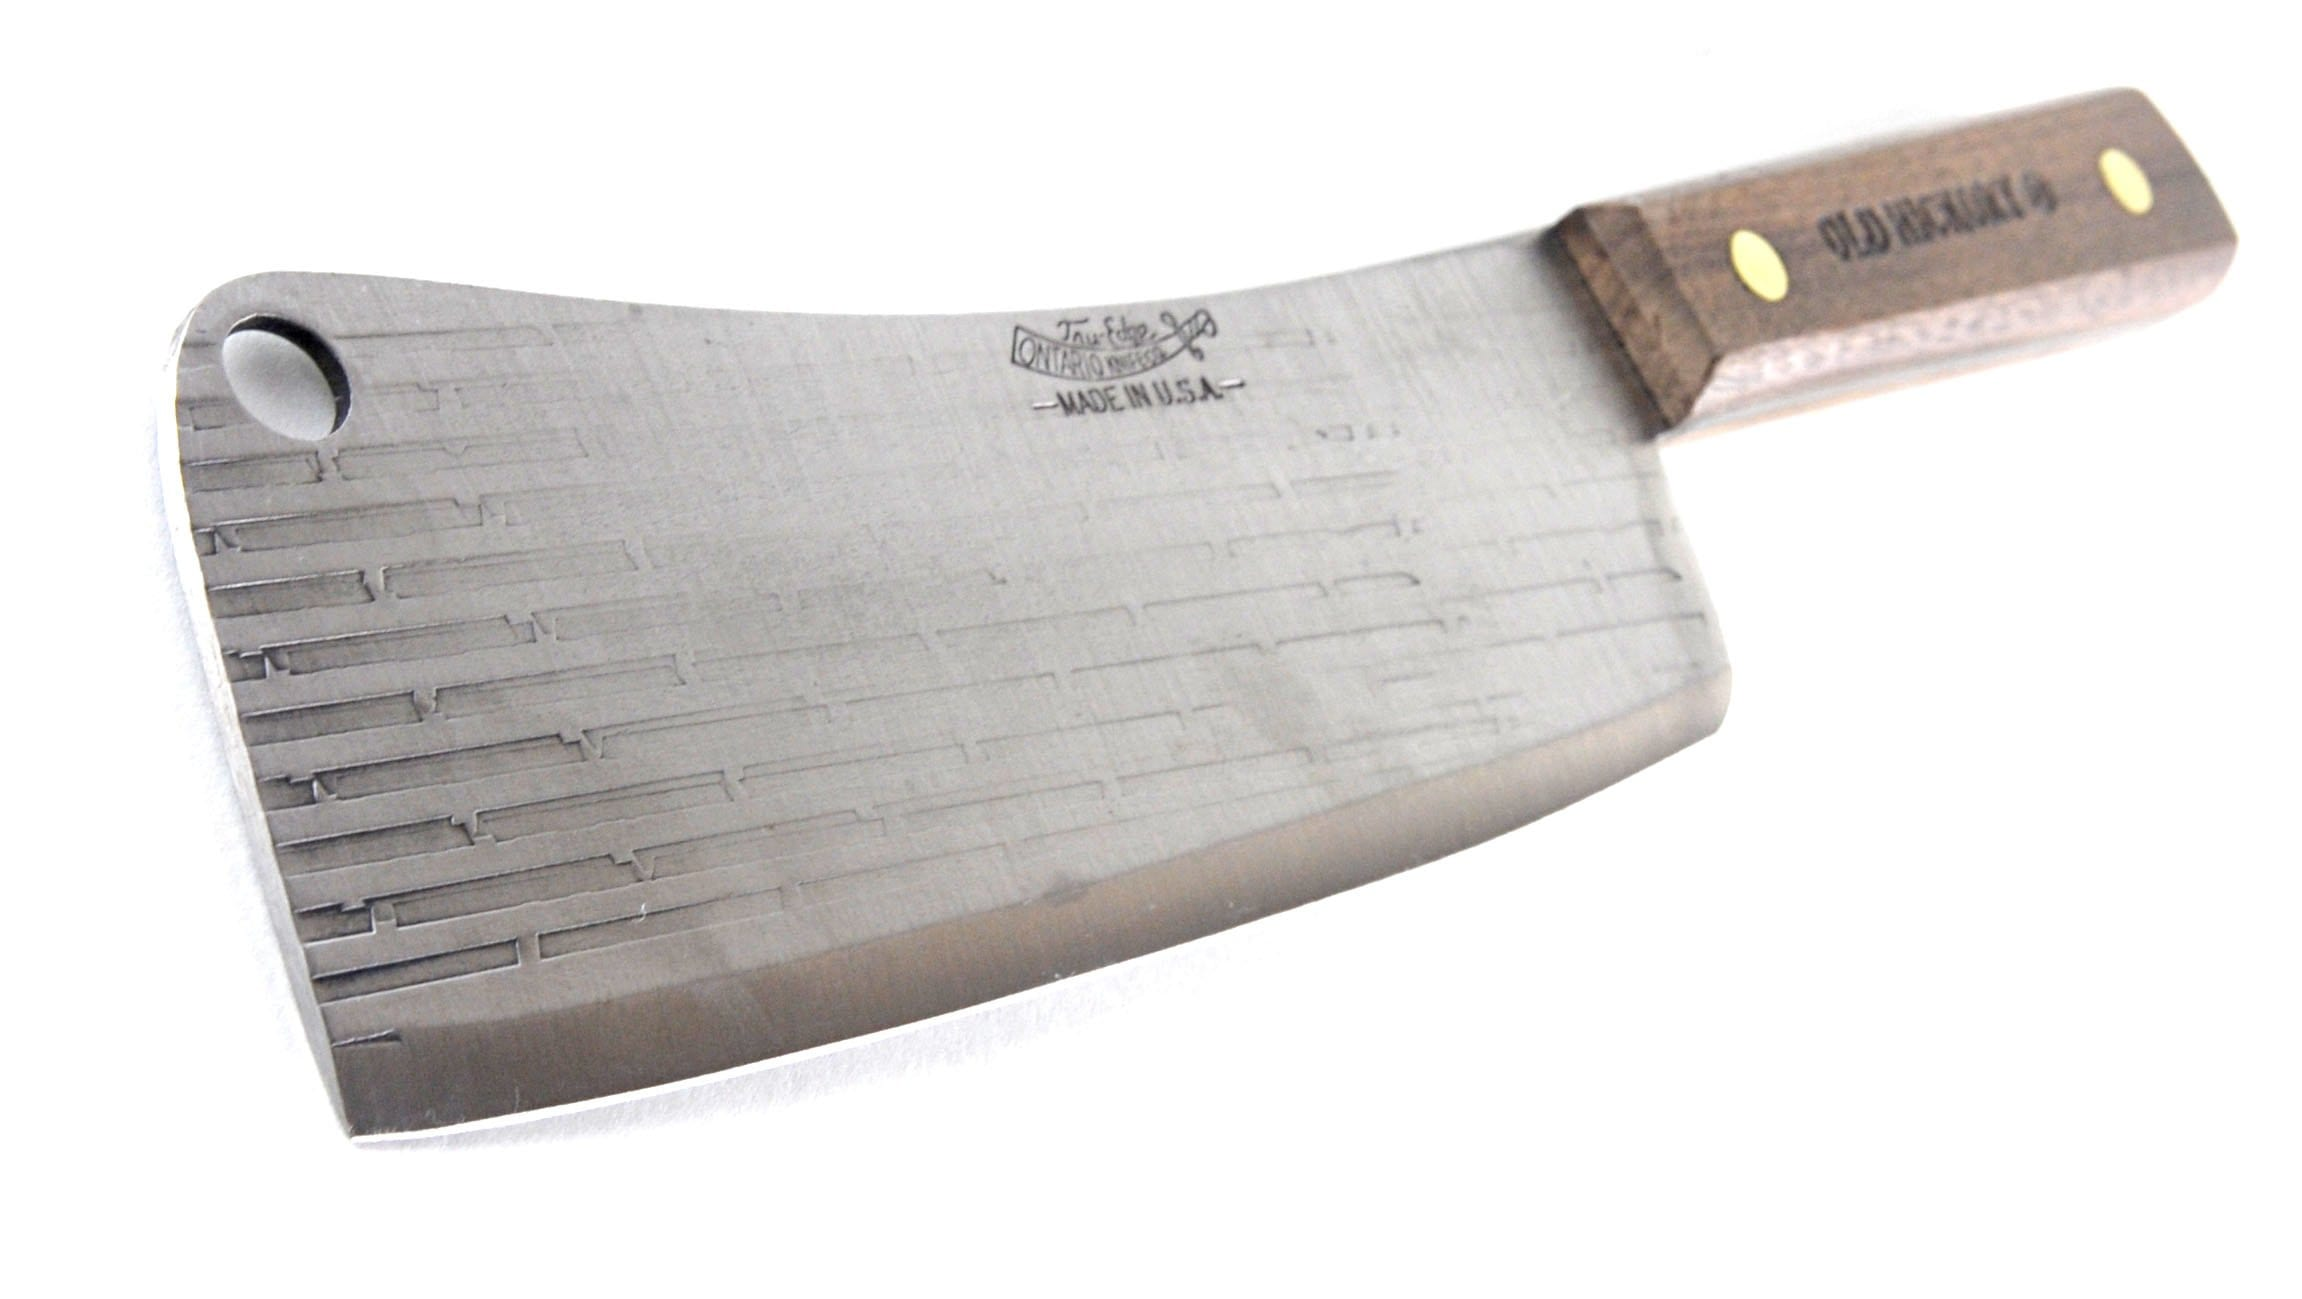 Ontario Knife Company Old Hickory 76-7 in  Cleaver/Chopper